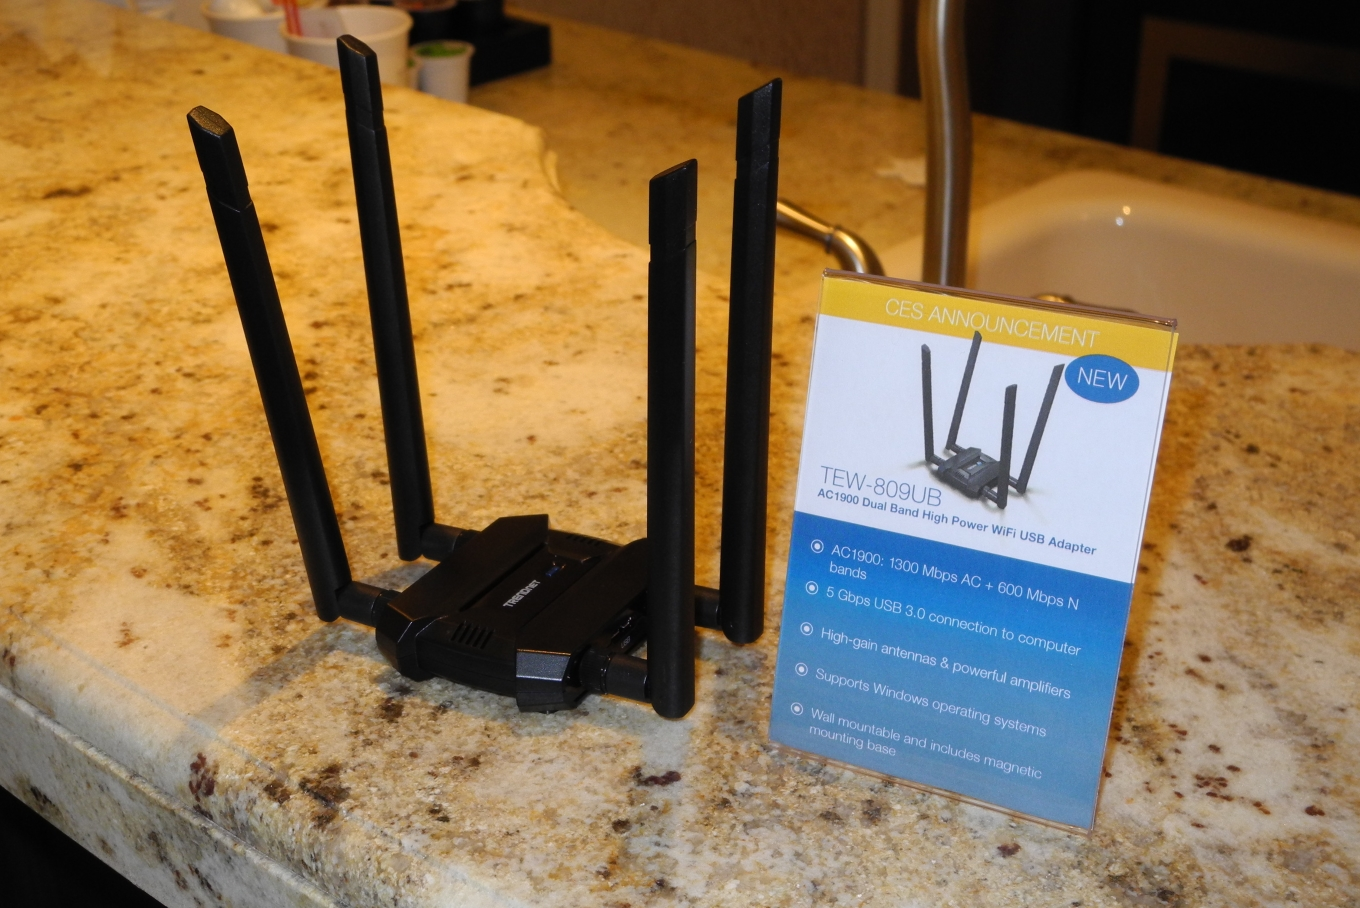 TRENDnet Announces AC2600 Router and AC1900 USB 3 0 WLAN Adapter at CES